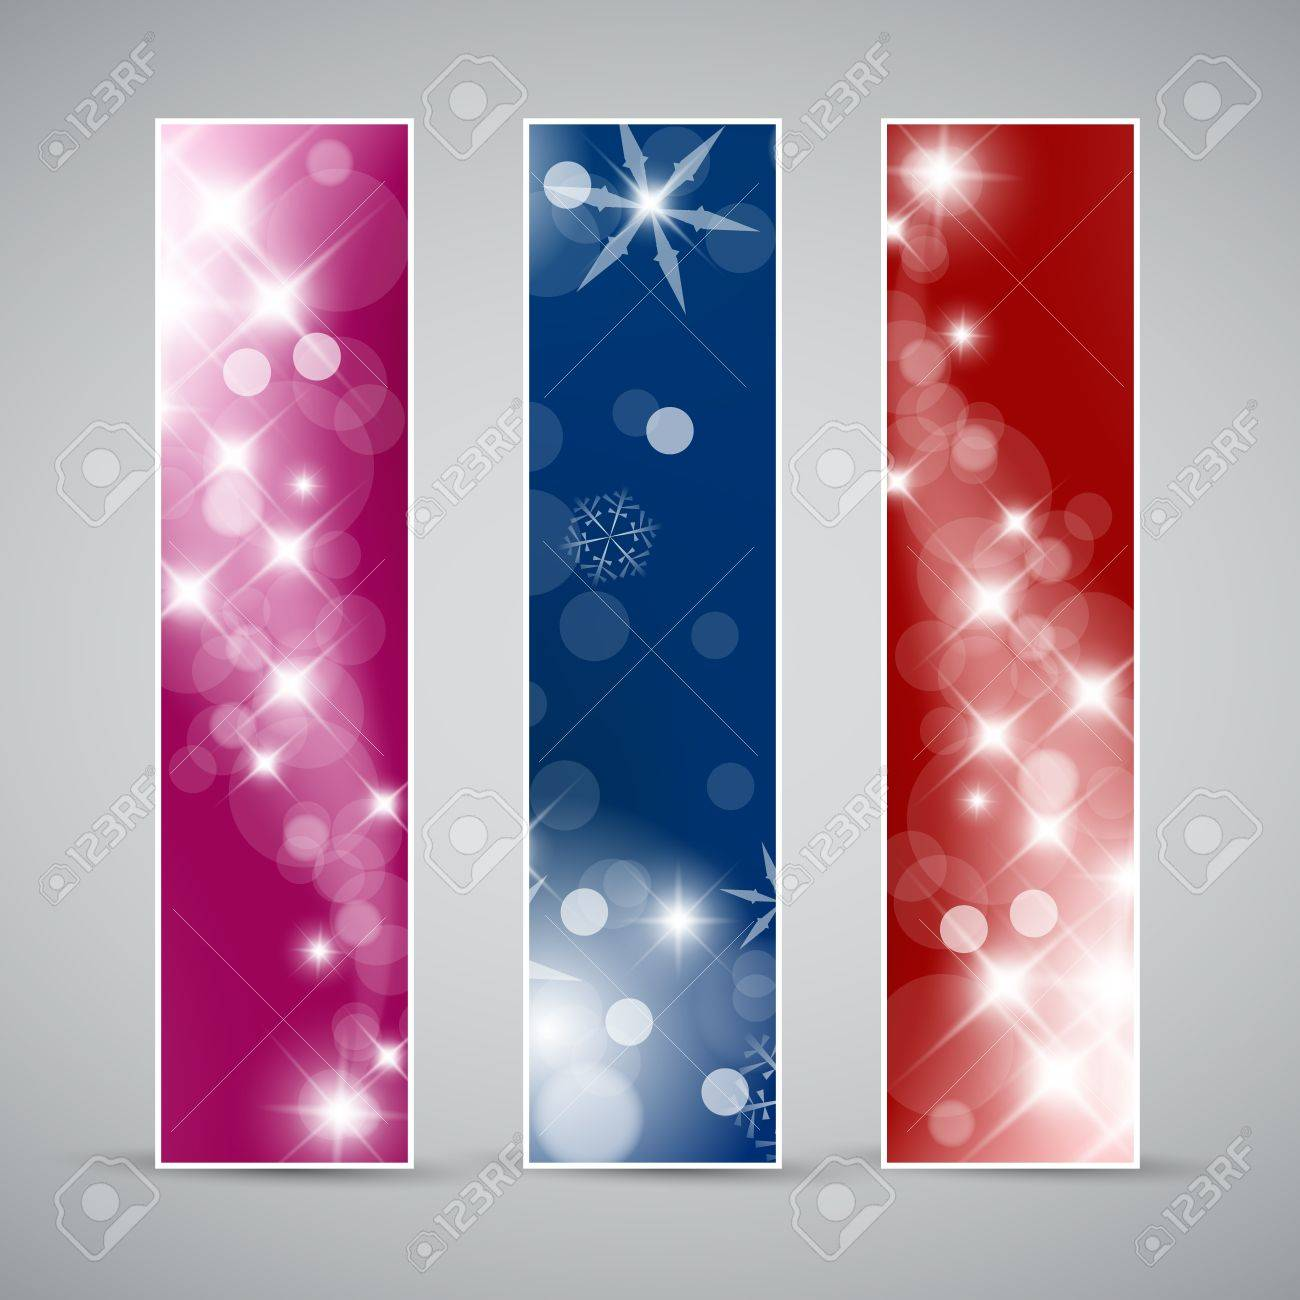 Set of christmas / New Year vertical banners 2012 Stock Vector - 10859539